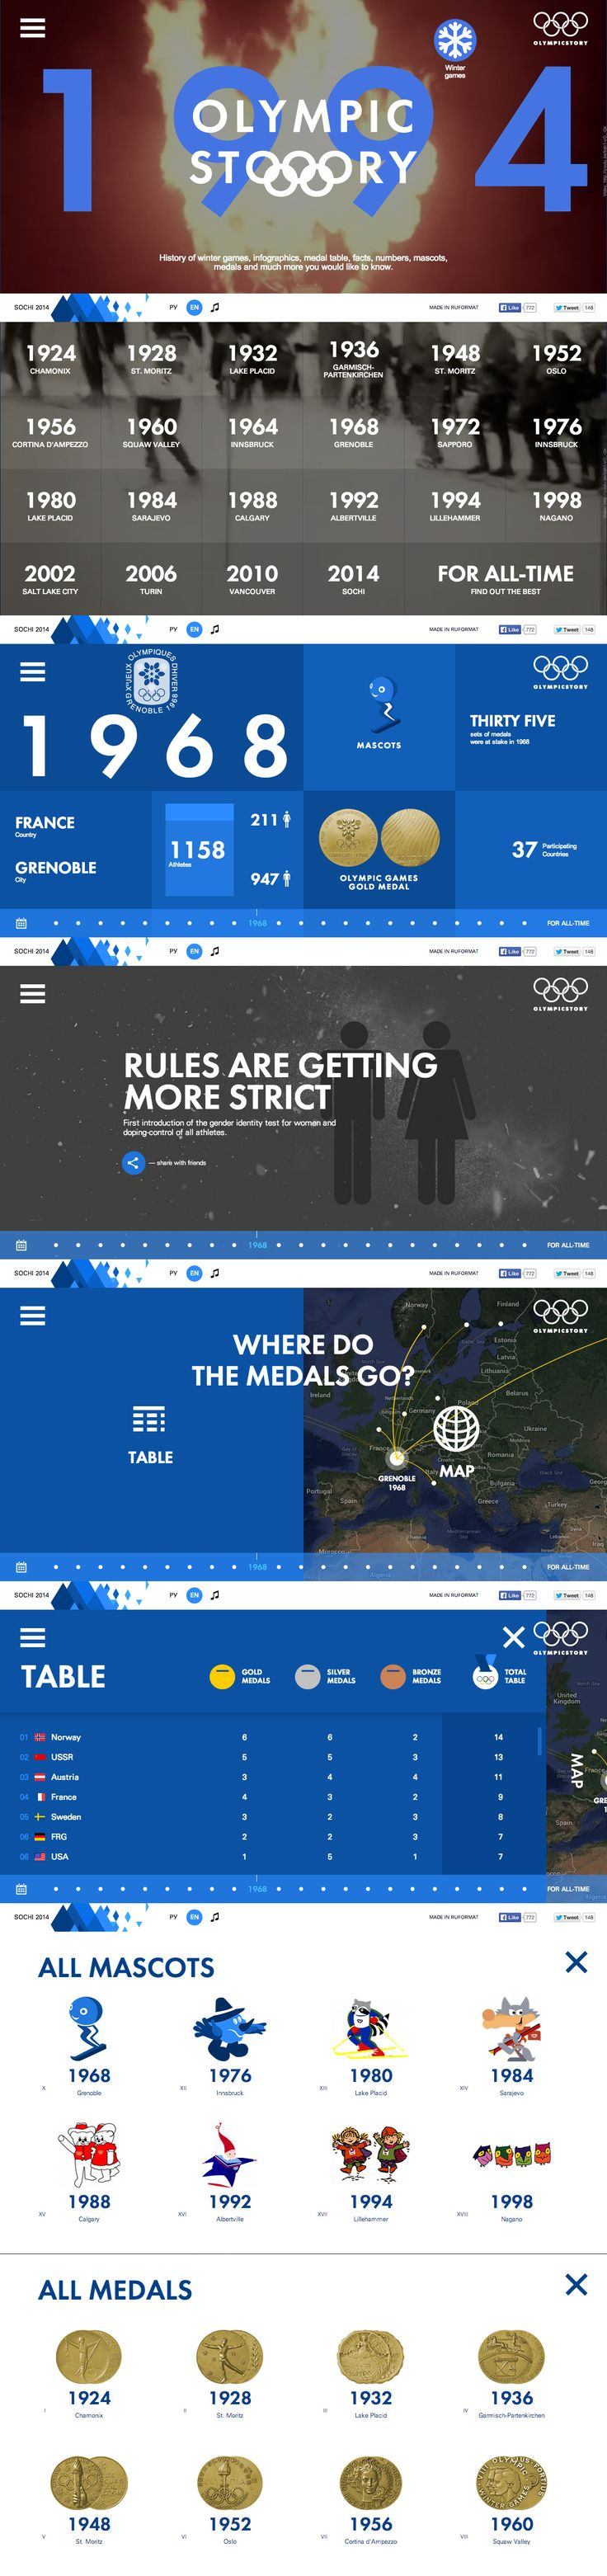 Olympic Story Really cool website to illustrate the Olympic Winter Games through history. http://www.olympicstory.com